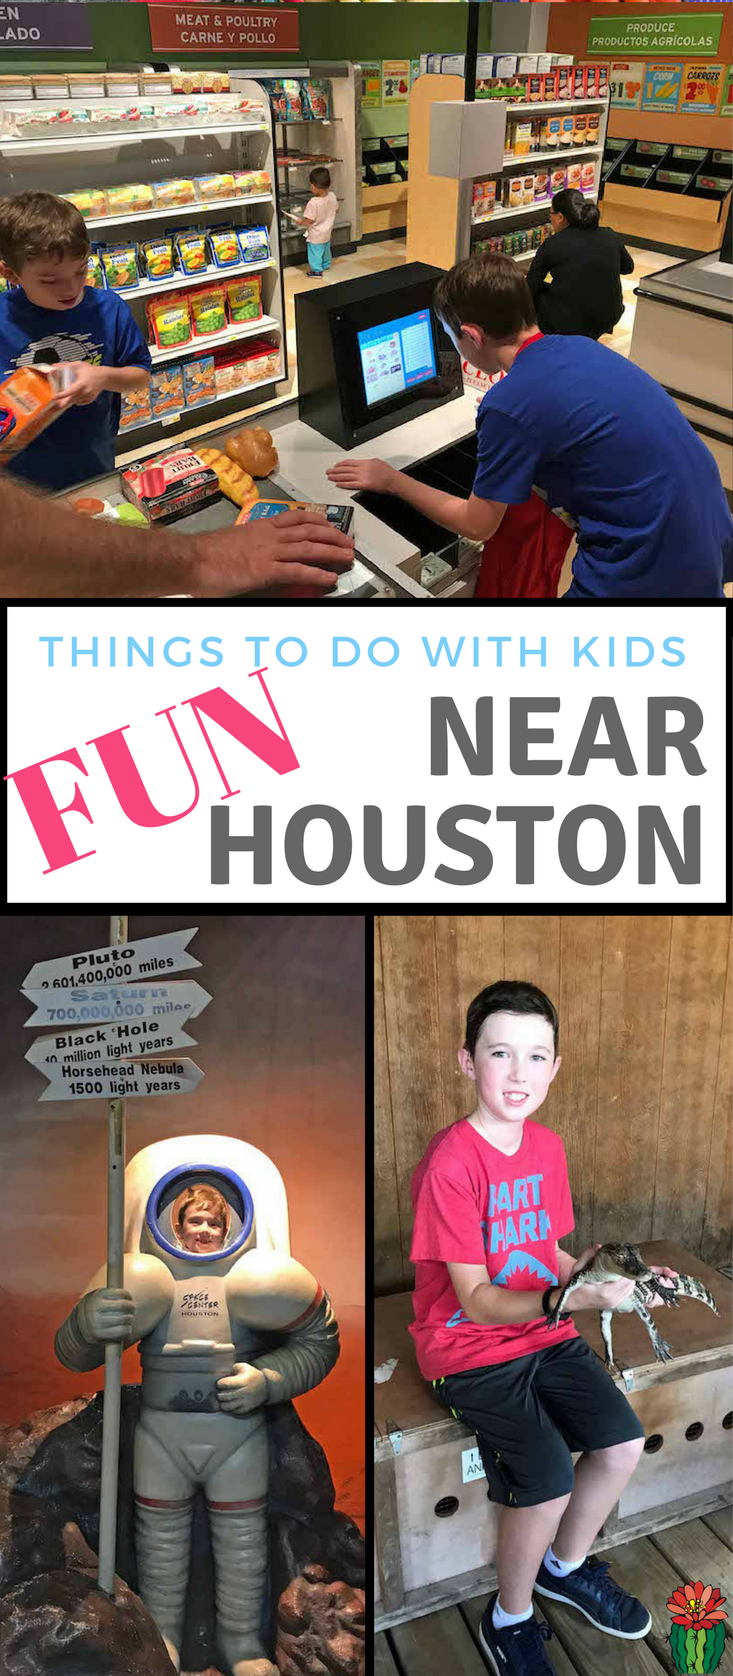 Families visiting Houston will find lots of fun things to do with children. Our kids had a blast on our trip that included holding an alligator, running a grocery store and space exploration. Day Trips for Houston | Places to Visit in Houston | Things to do in Houston Texas